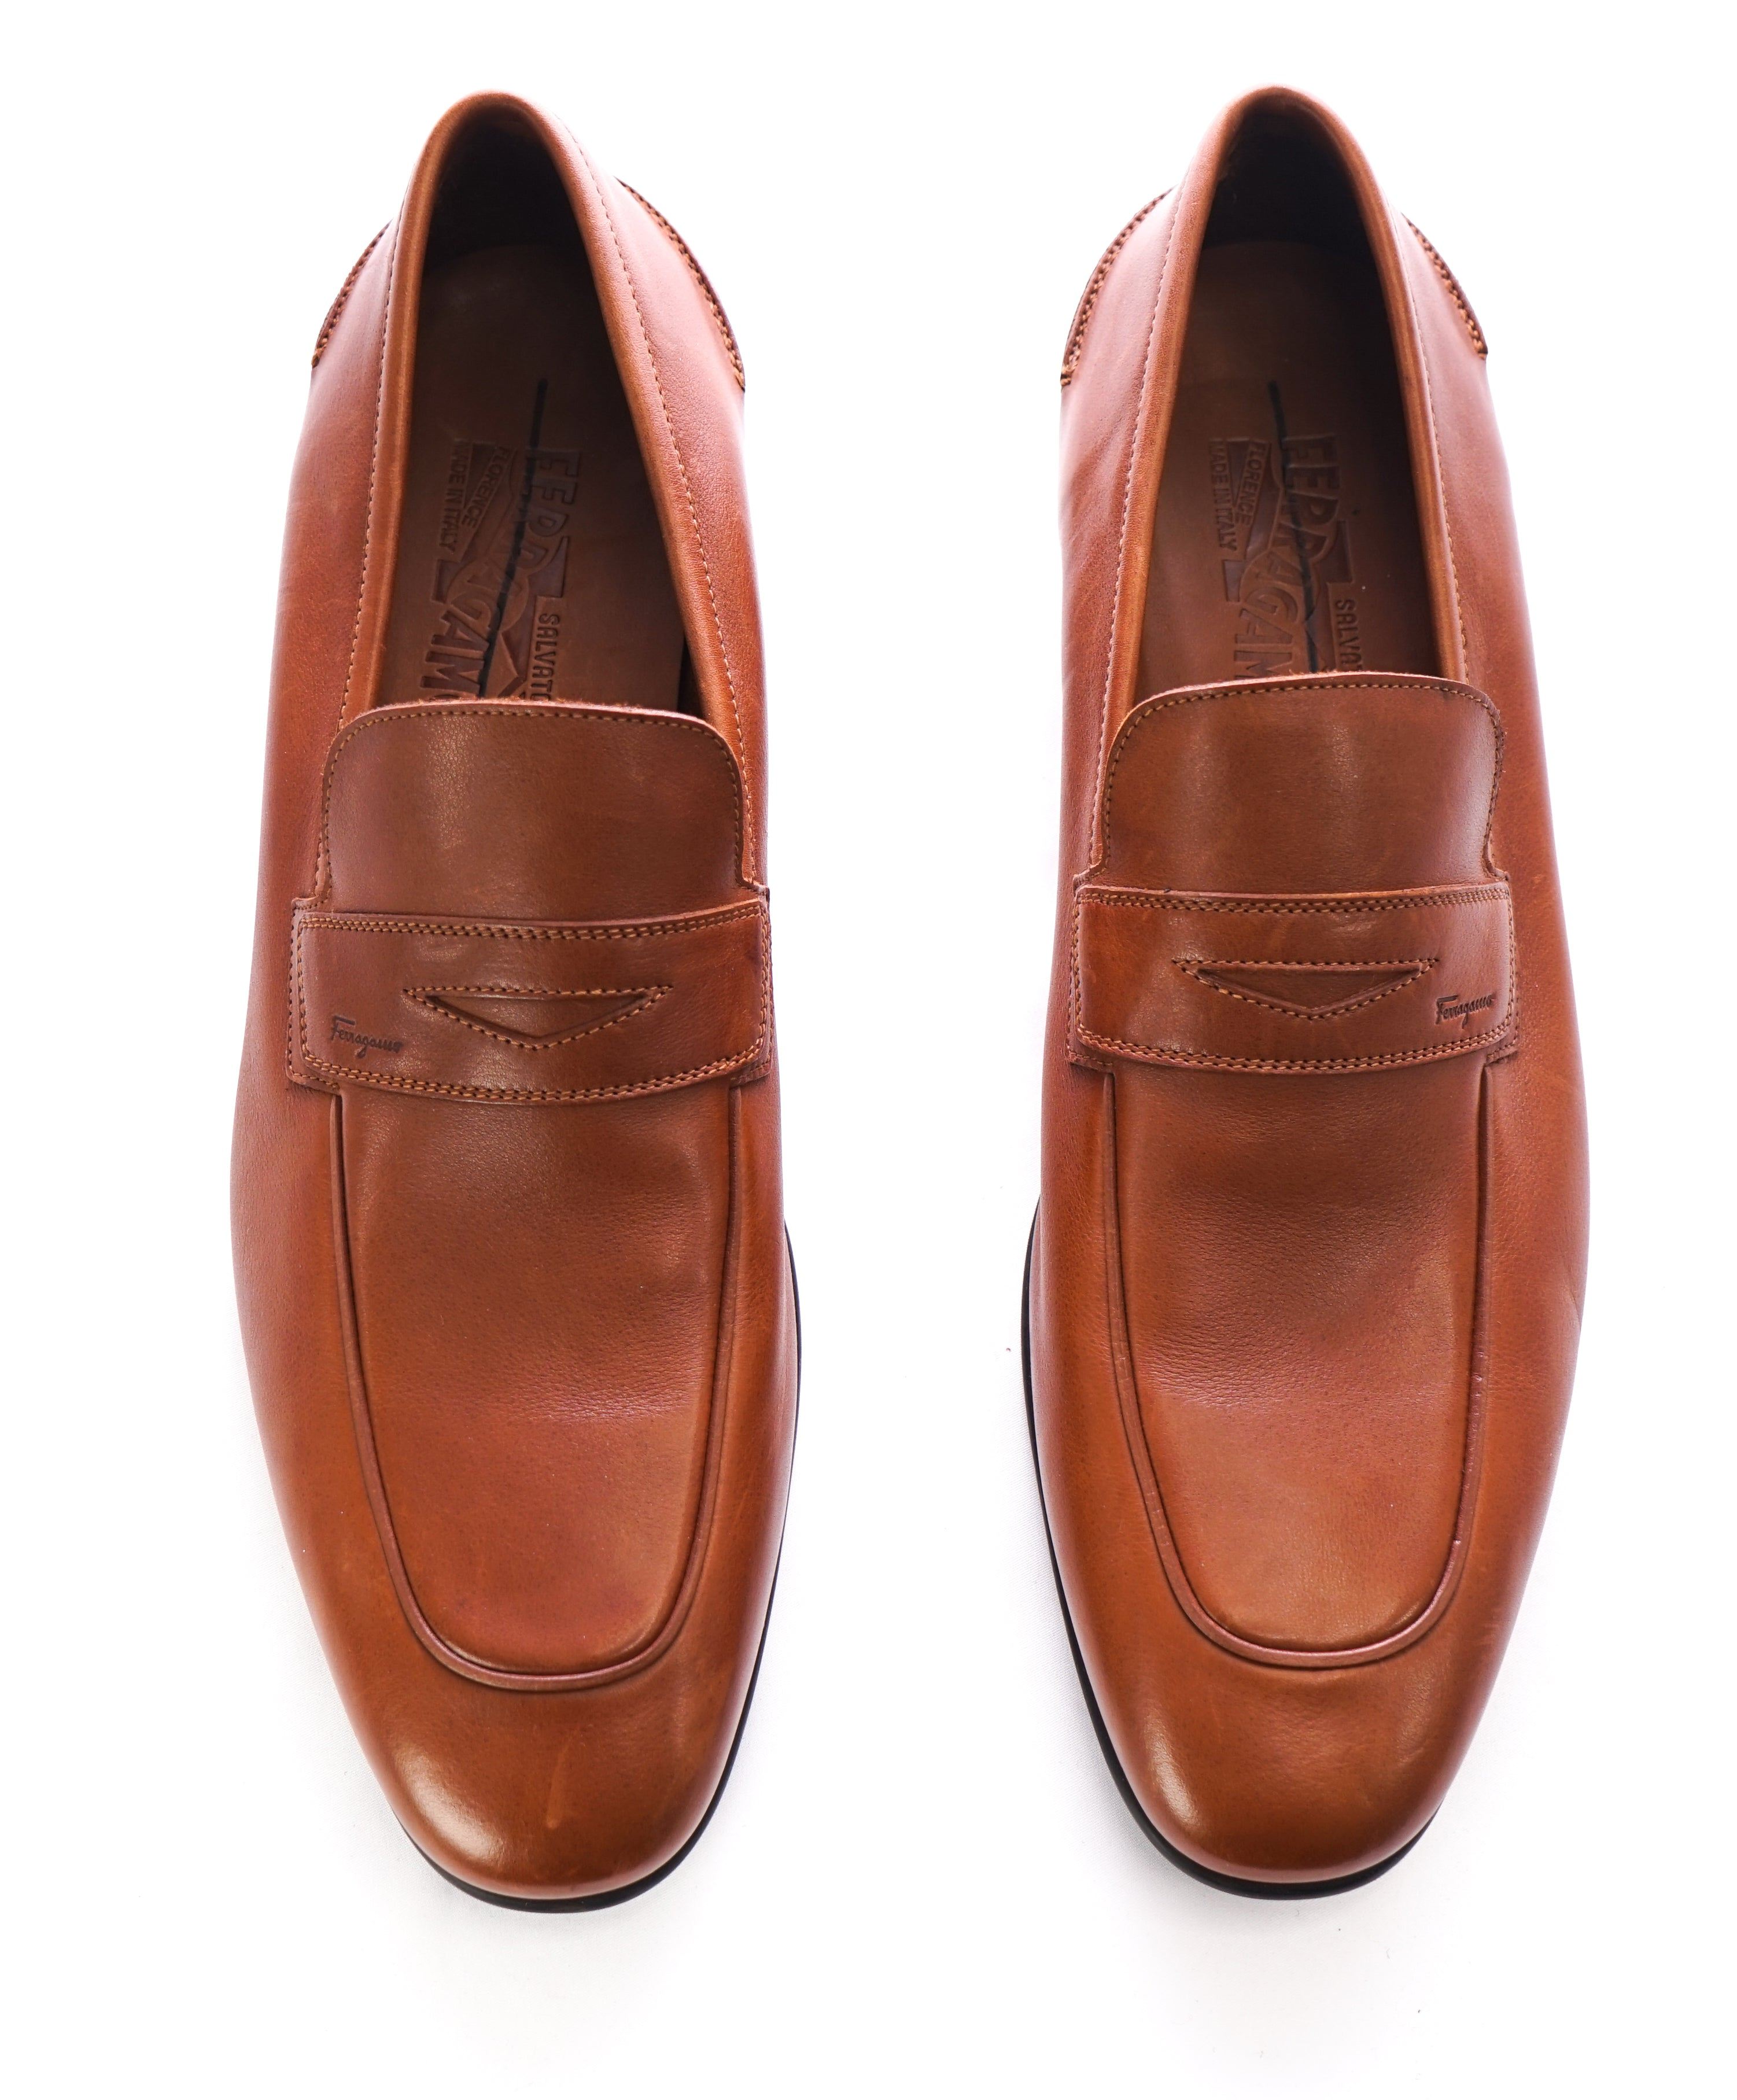 SALVATORE FERRAGAMO - Supple Leather Brown Penny Loafers Sleek Silhouette - 11.5 D